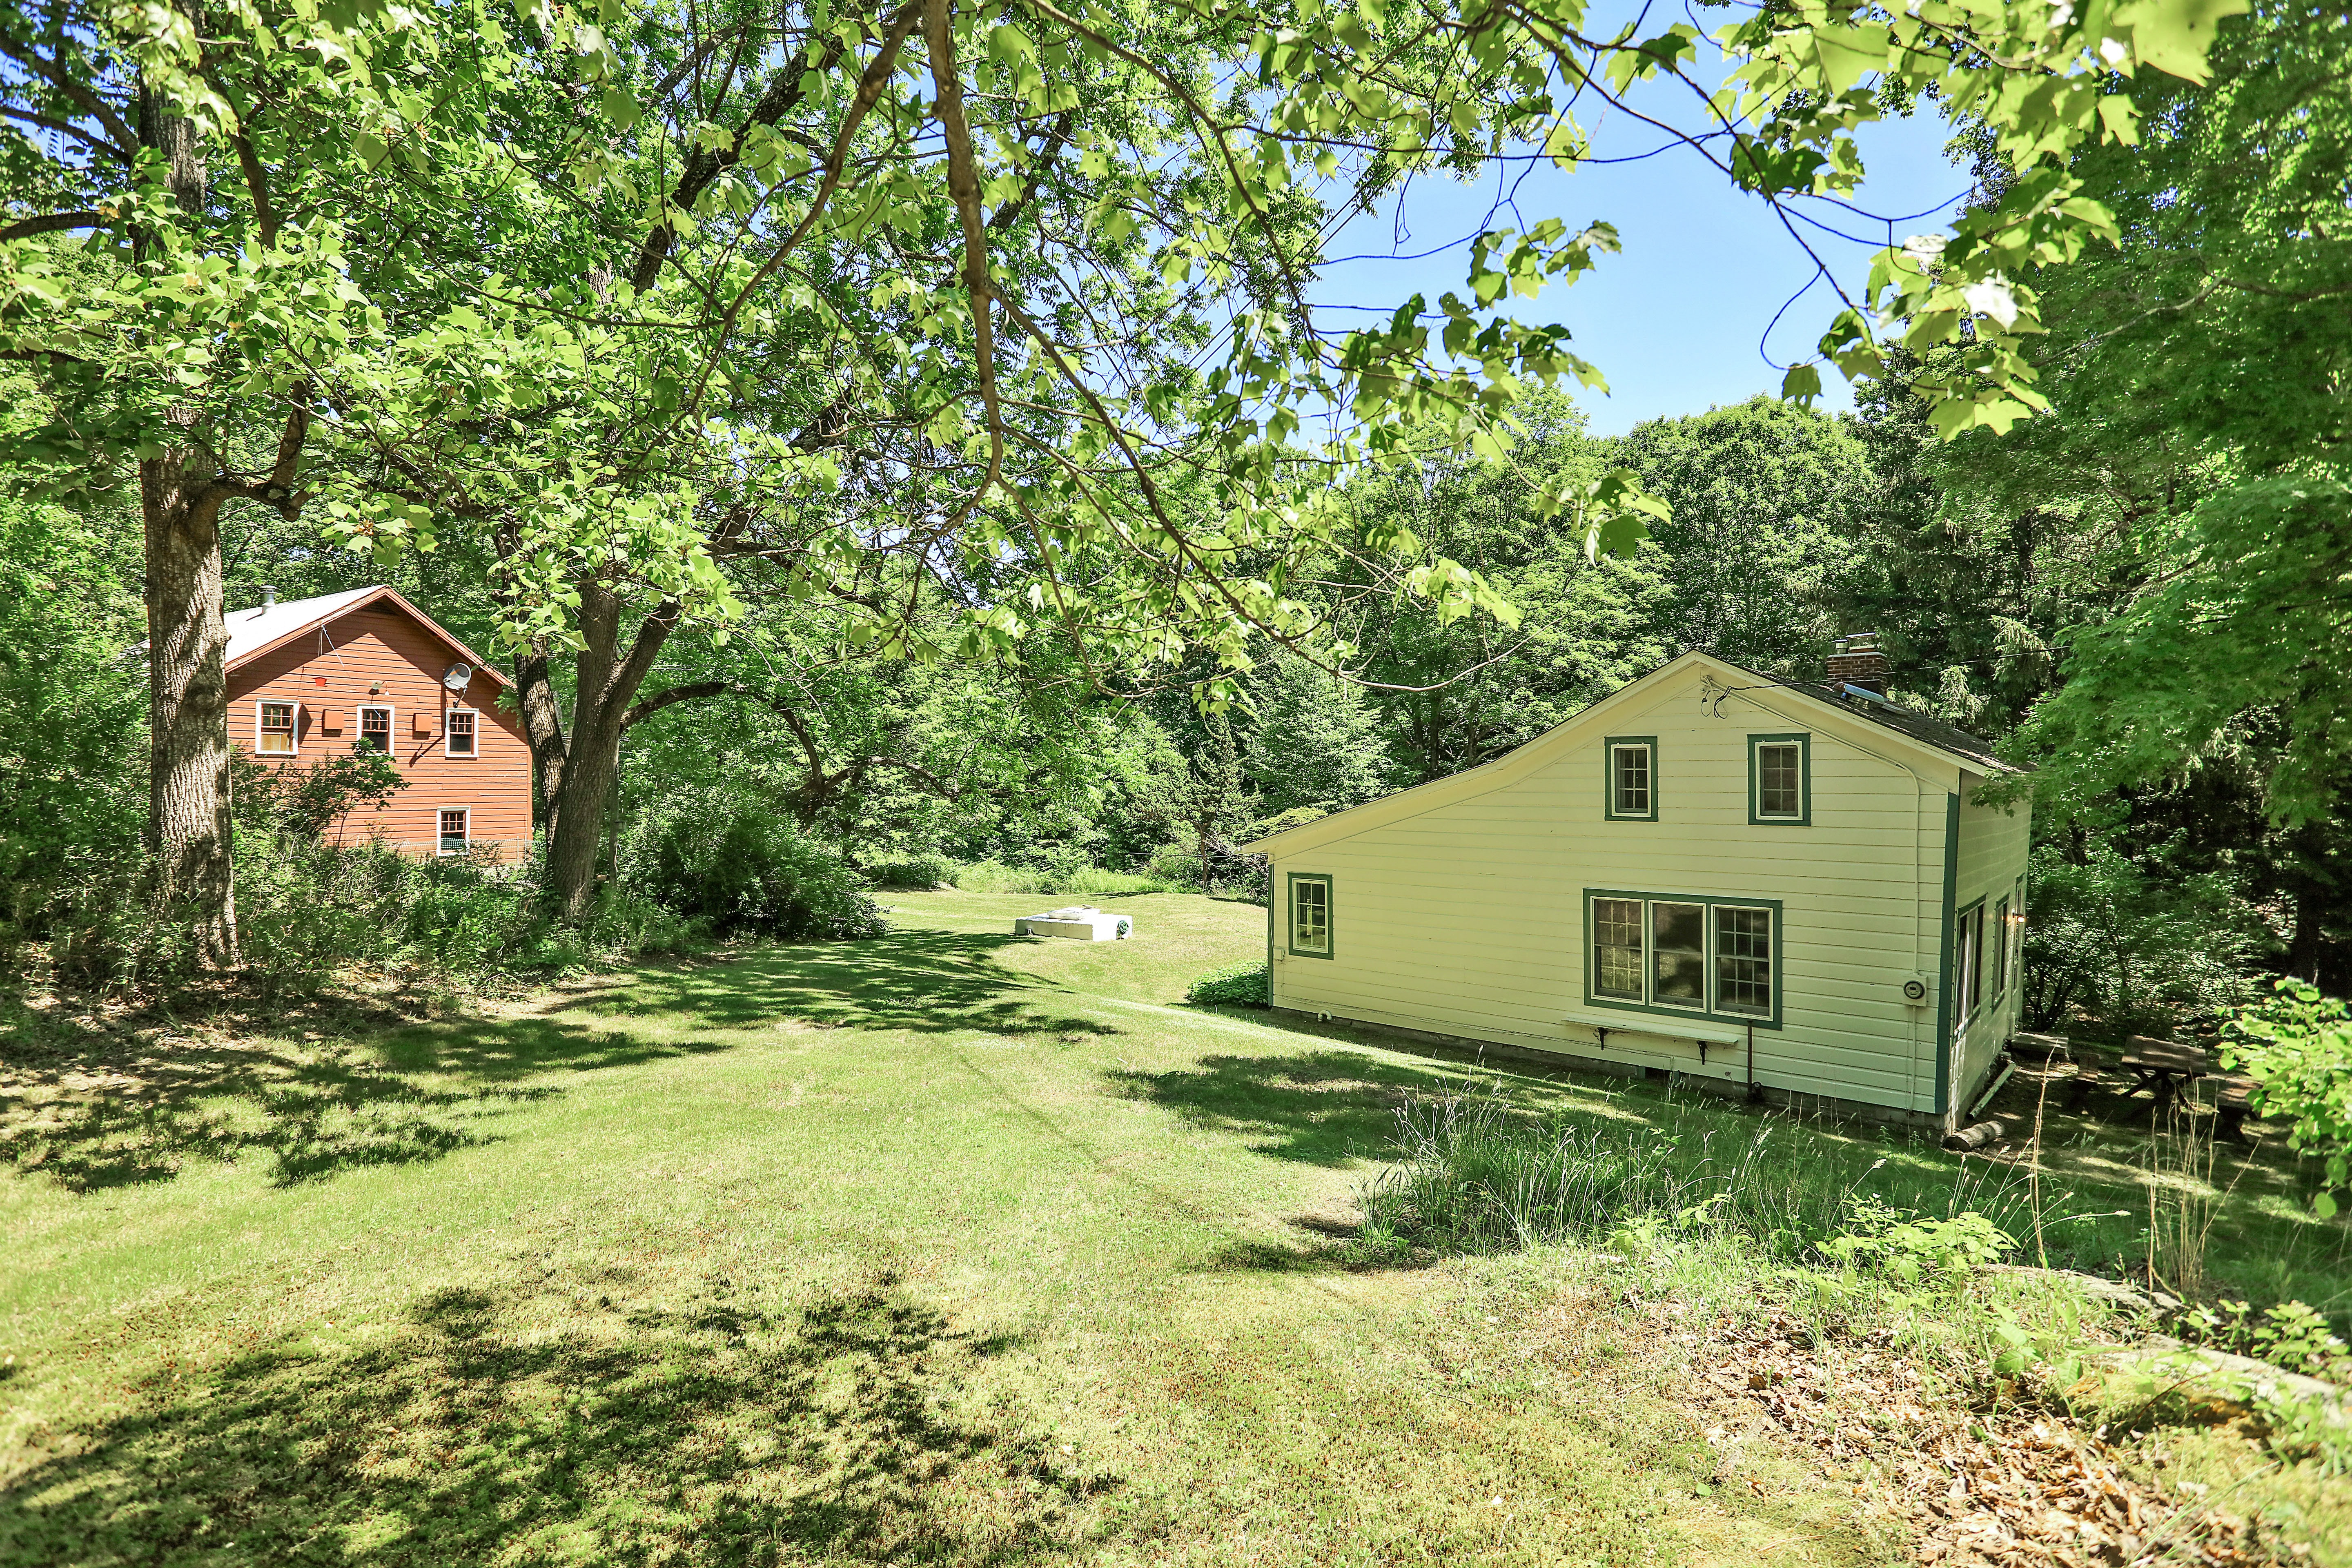 Single Family Home for Sale at Enchanting Poet's Cottage 1 Knights Way Rhinebeck, New York 12514 United States